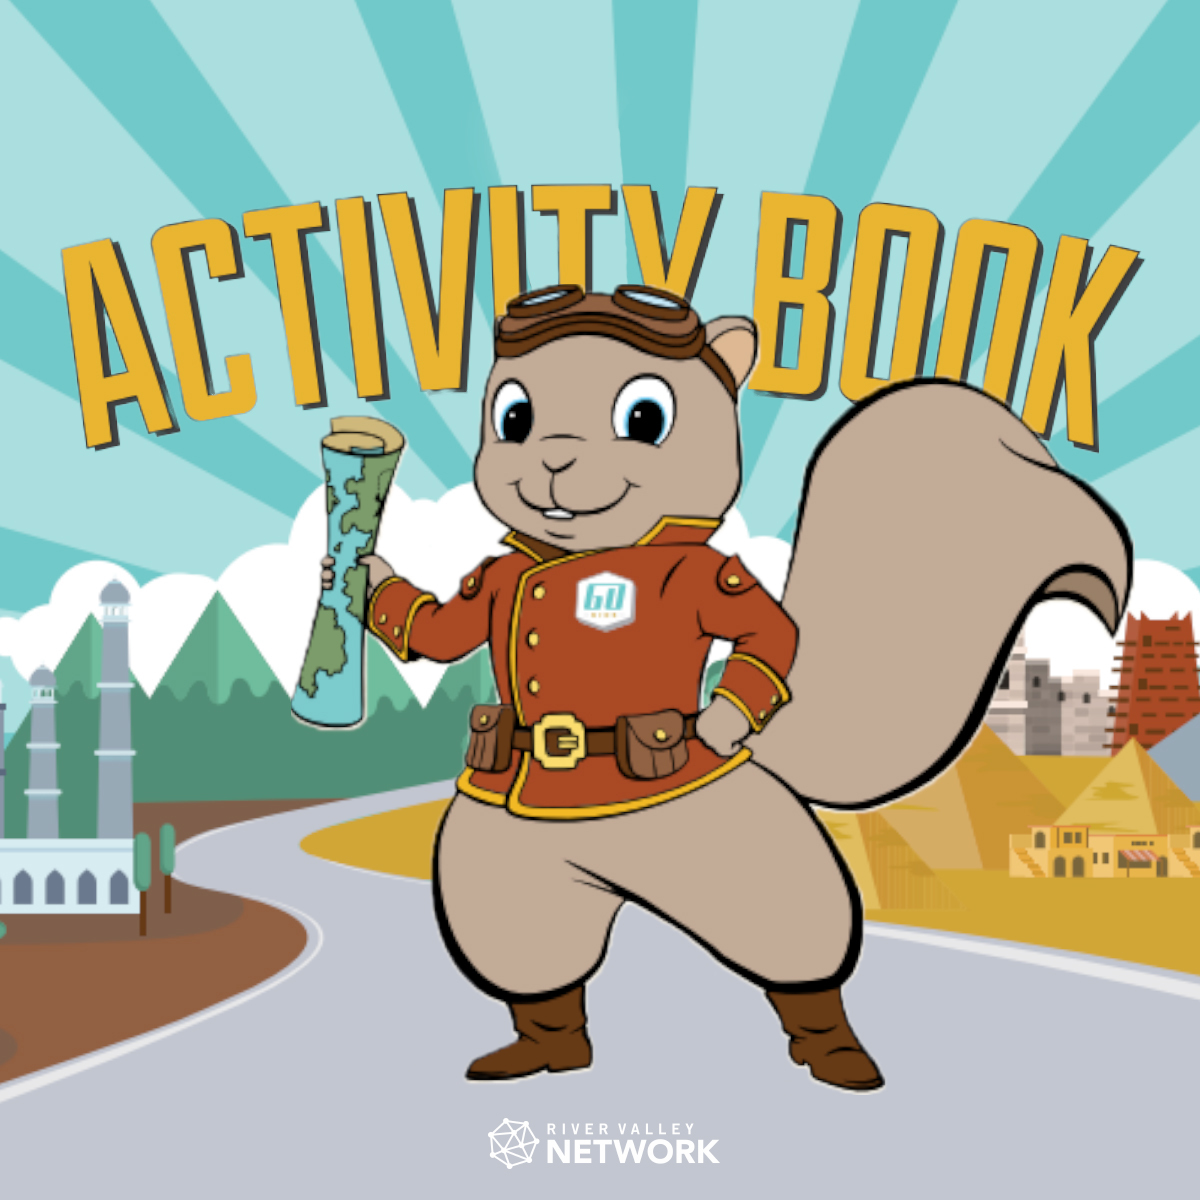 Missions Activity Book - Go Kids